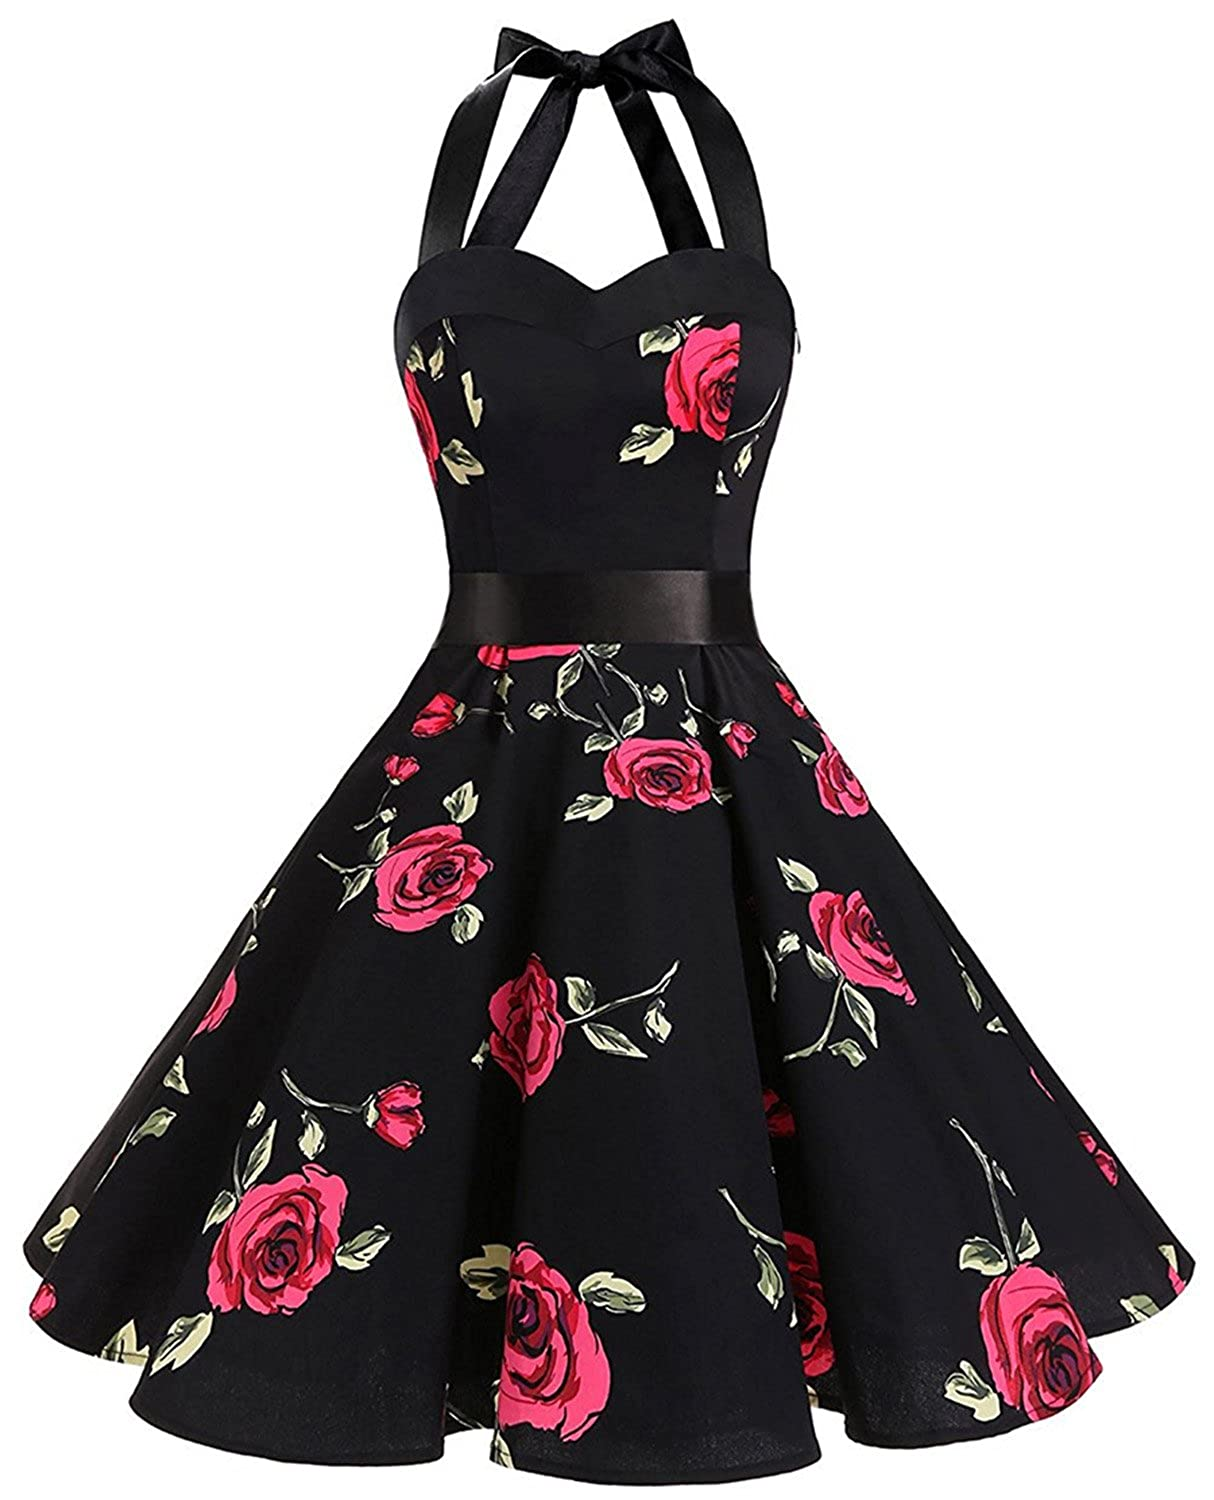 71b43278cc34 Features: Halter Neck; Floral Print; Knee Length; Concealed Zipper At Side;  Full Flared Skirt, Elegant Audrey Hepburn Dresses. This Party Swing Dress  With ...